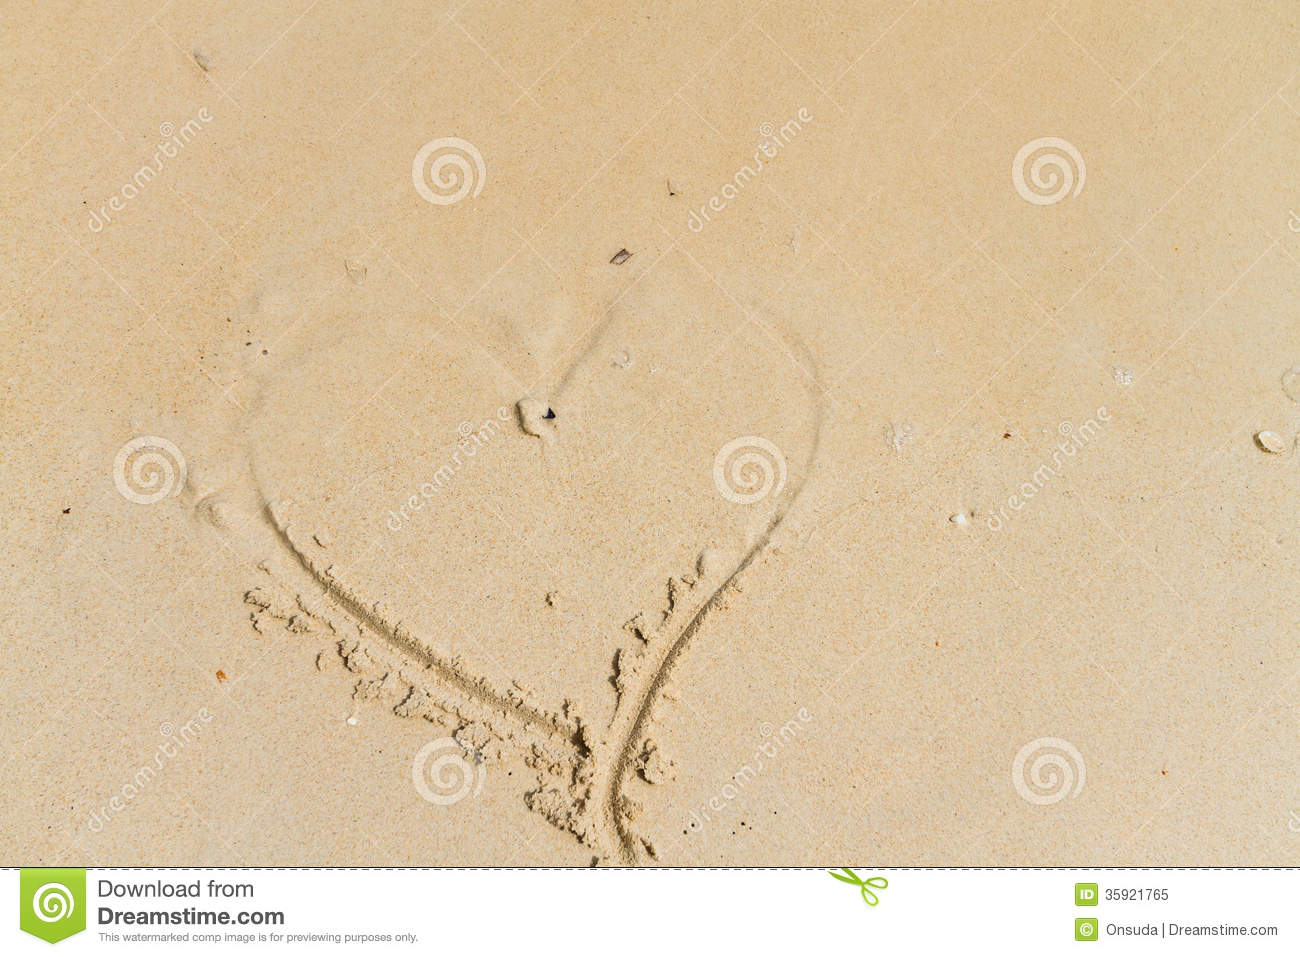 Heart drawing on sand